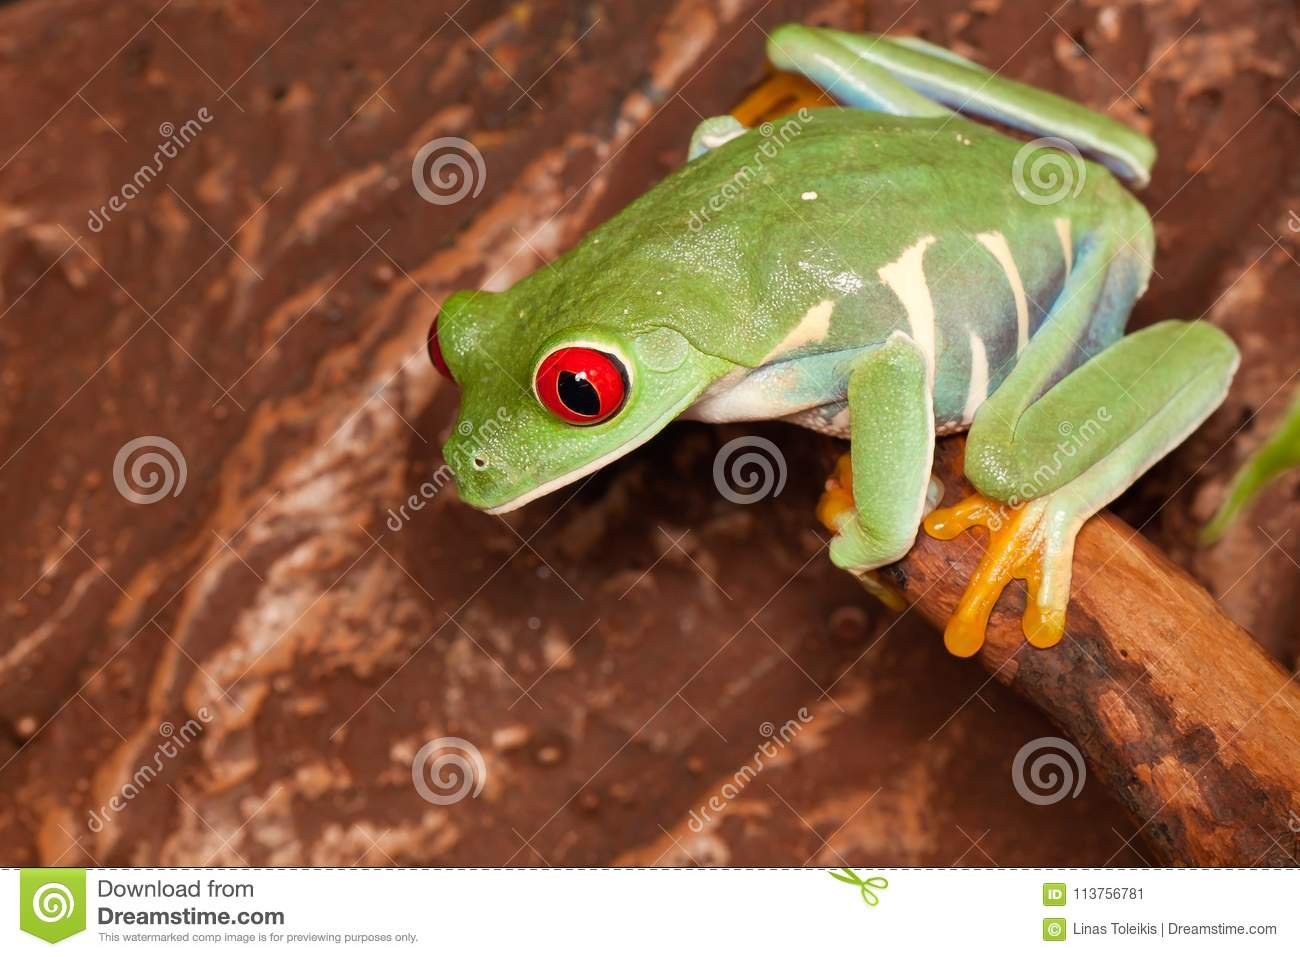 Red Eyed Tree Frog In The Terrarium Stock Image Image Of Frogs Looking 113756781